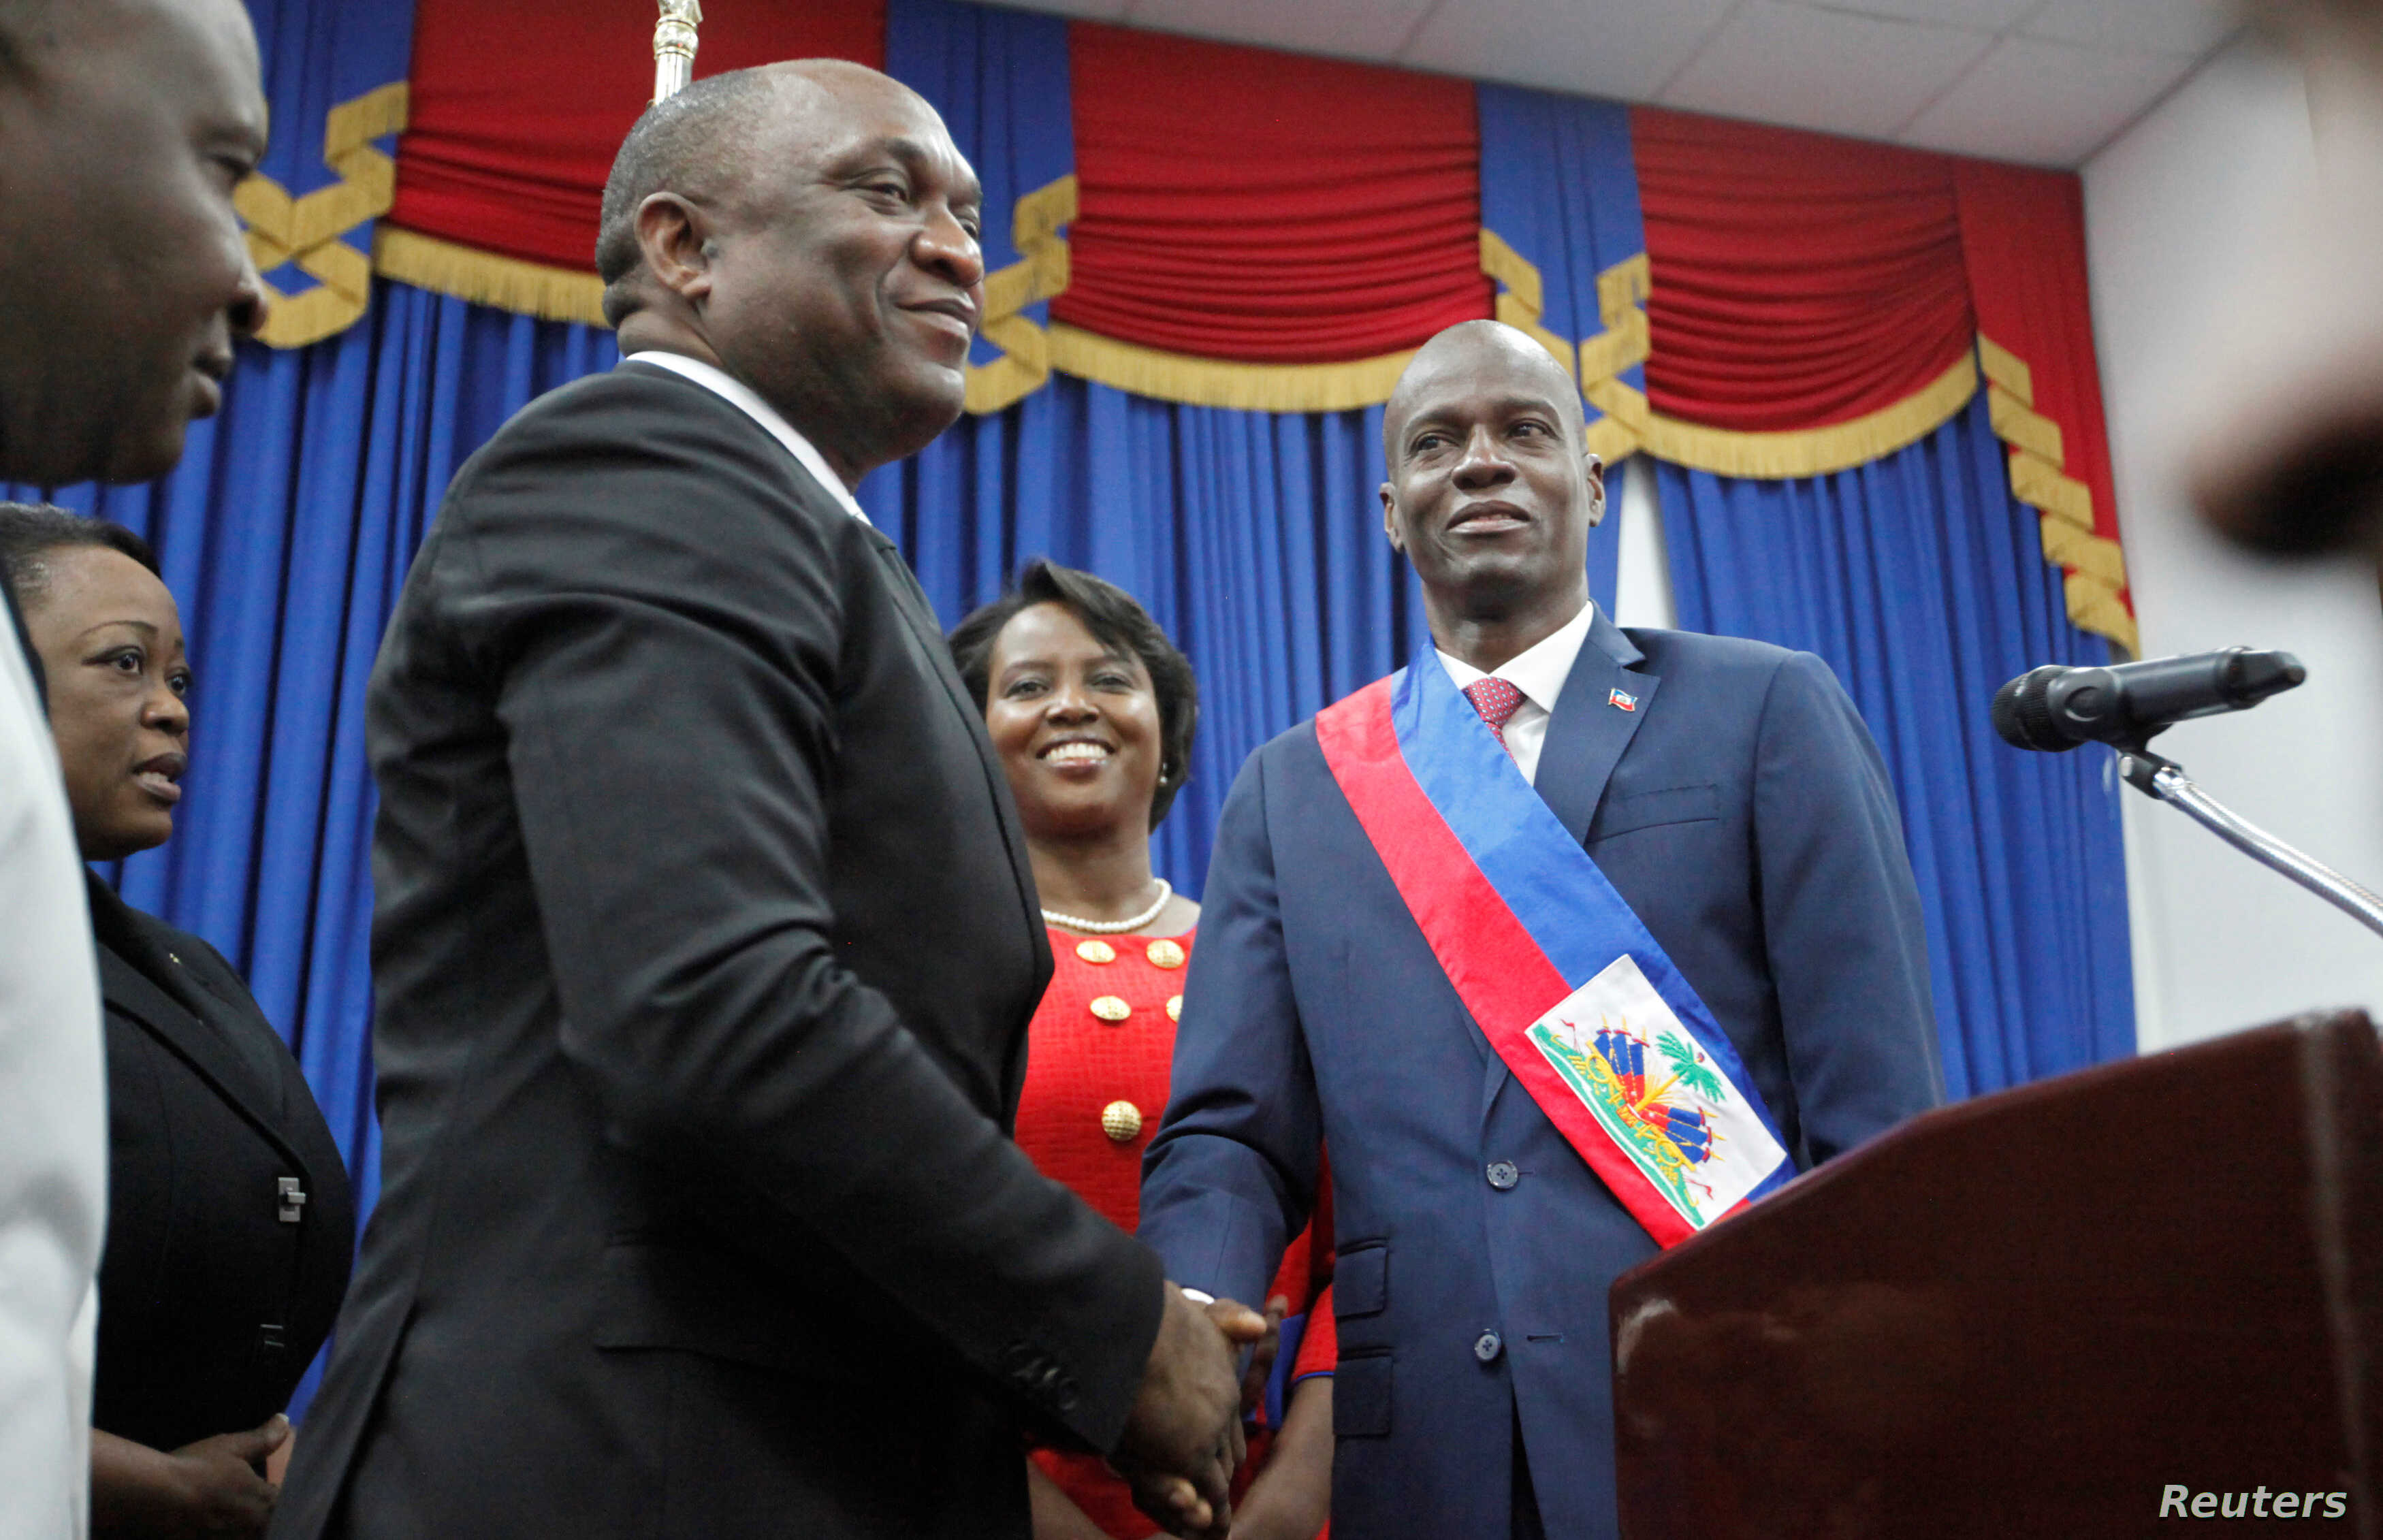 Haitian President Jovenel Moise shakes hands with the President of the Haitian Parliament Youri Latortue after receiving the presidential sash in Port-au-Prince, Haiti Feb. 7, 2017.